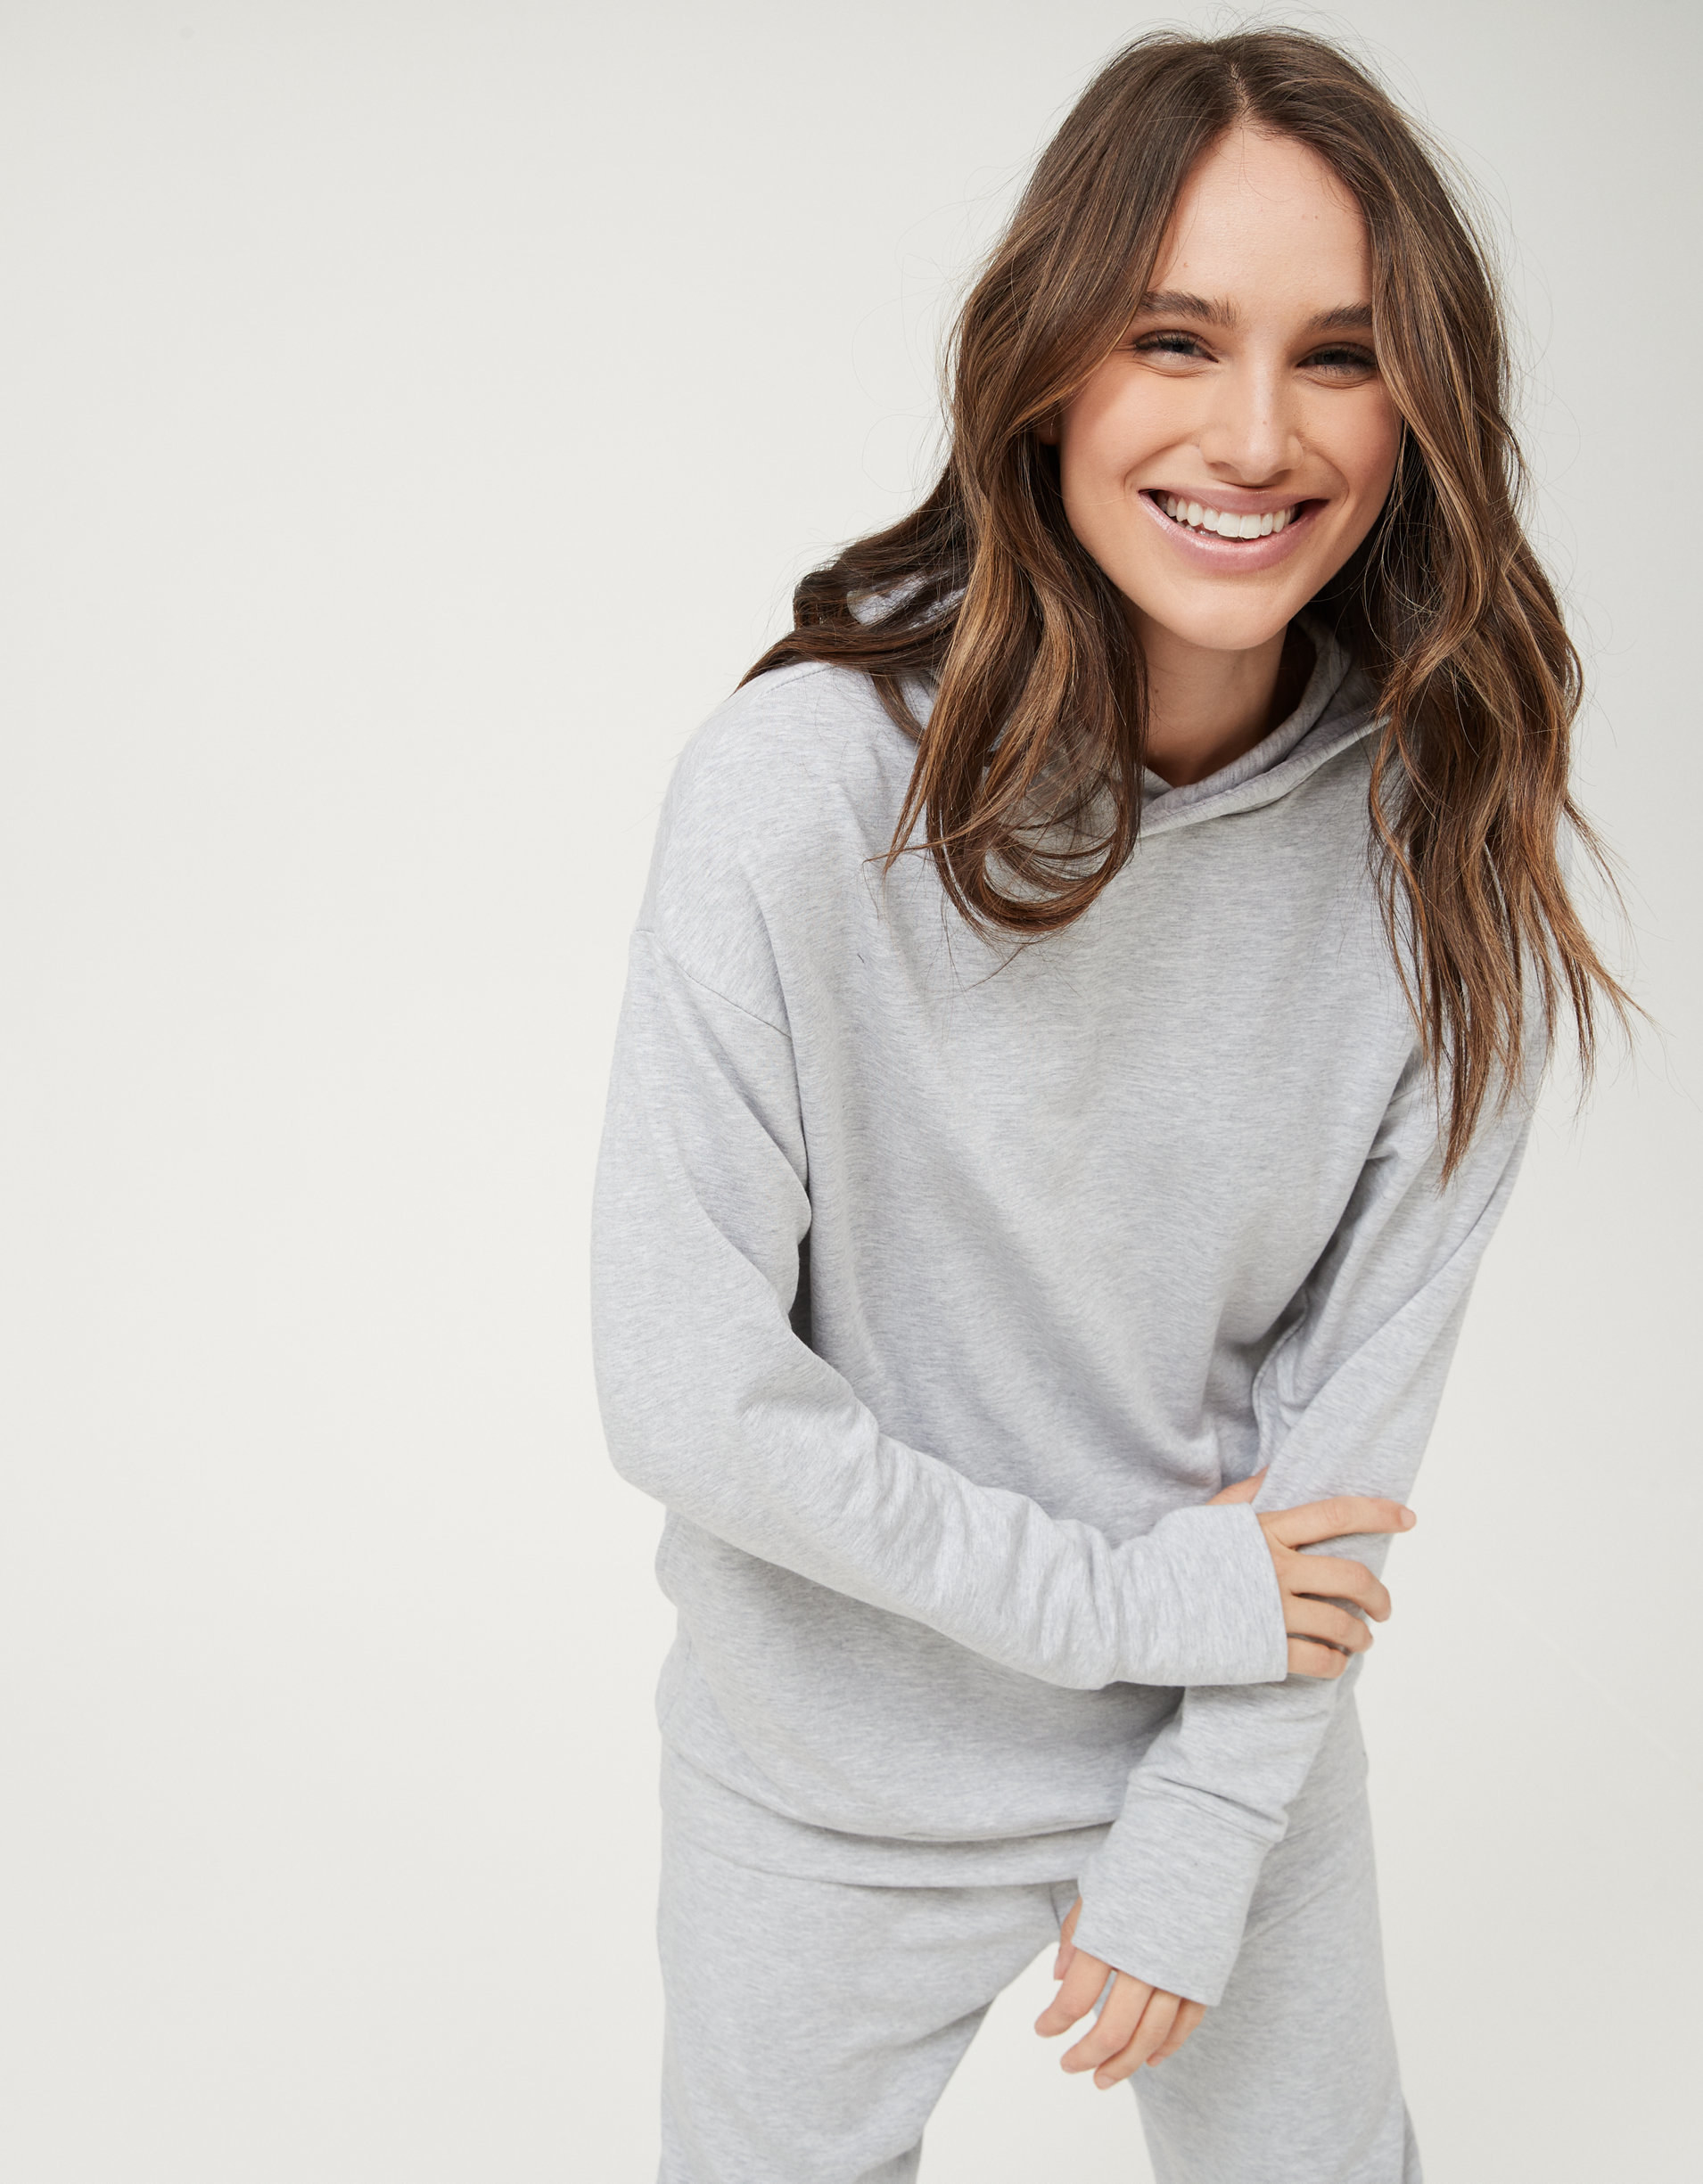 model in grey hoodie with matching sweatpants